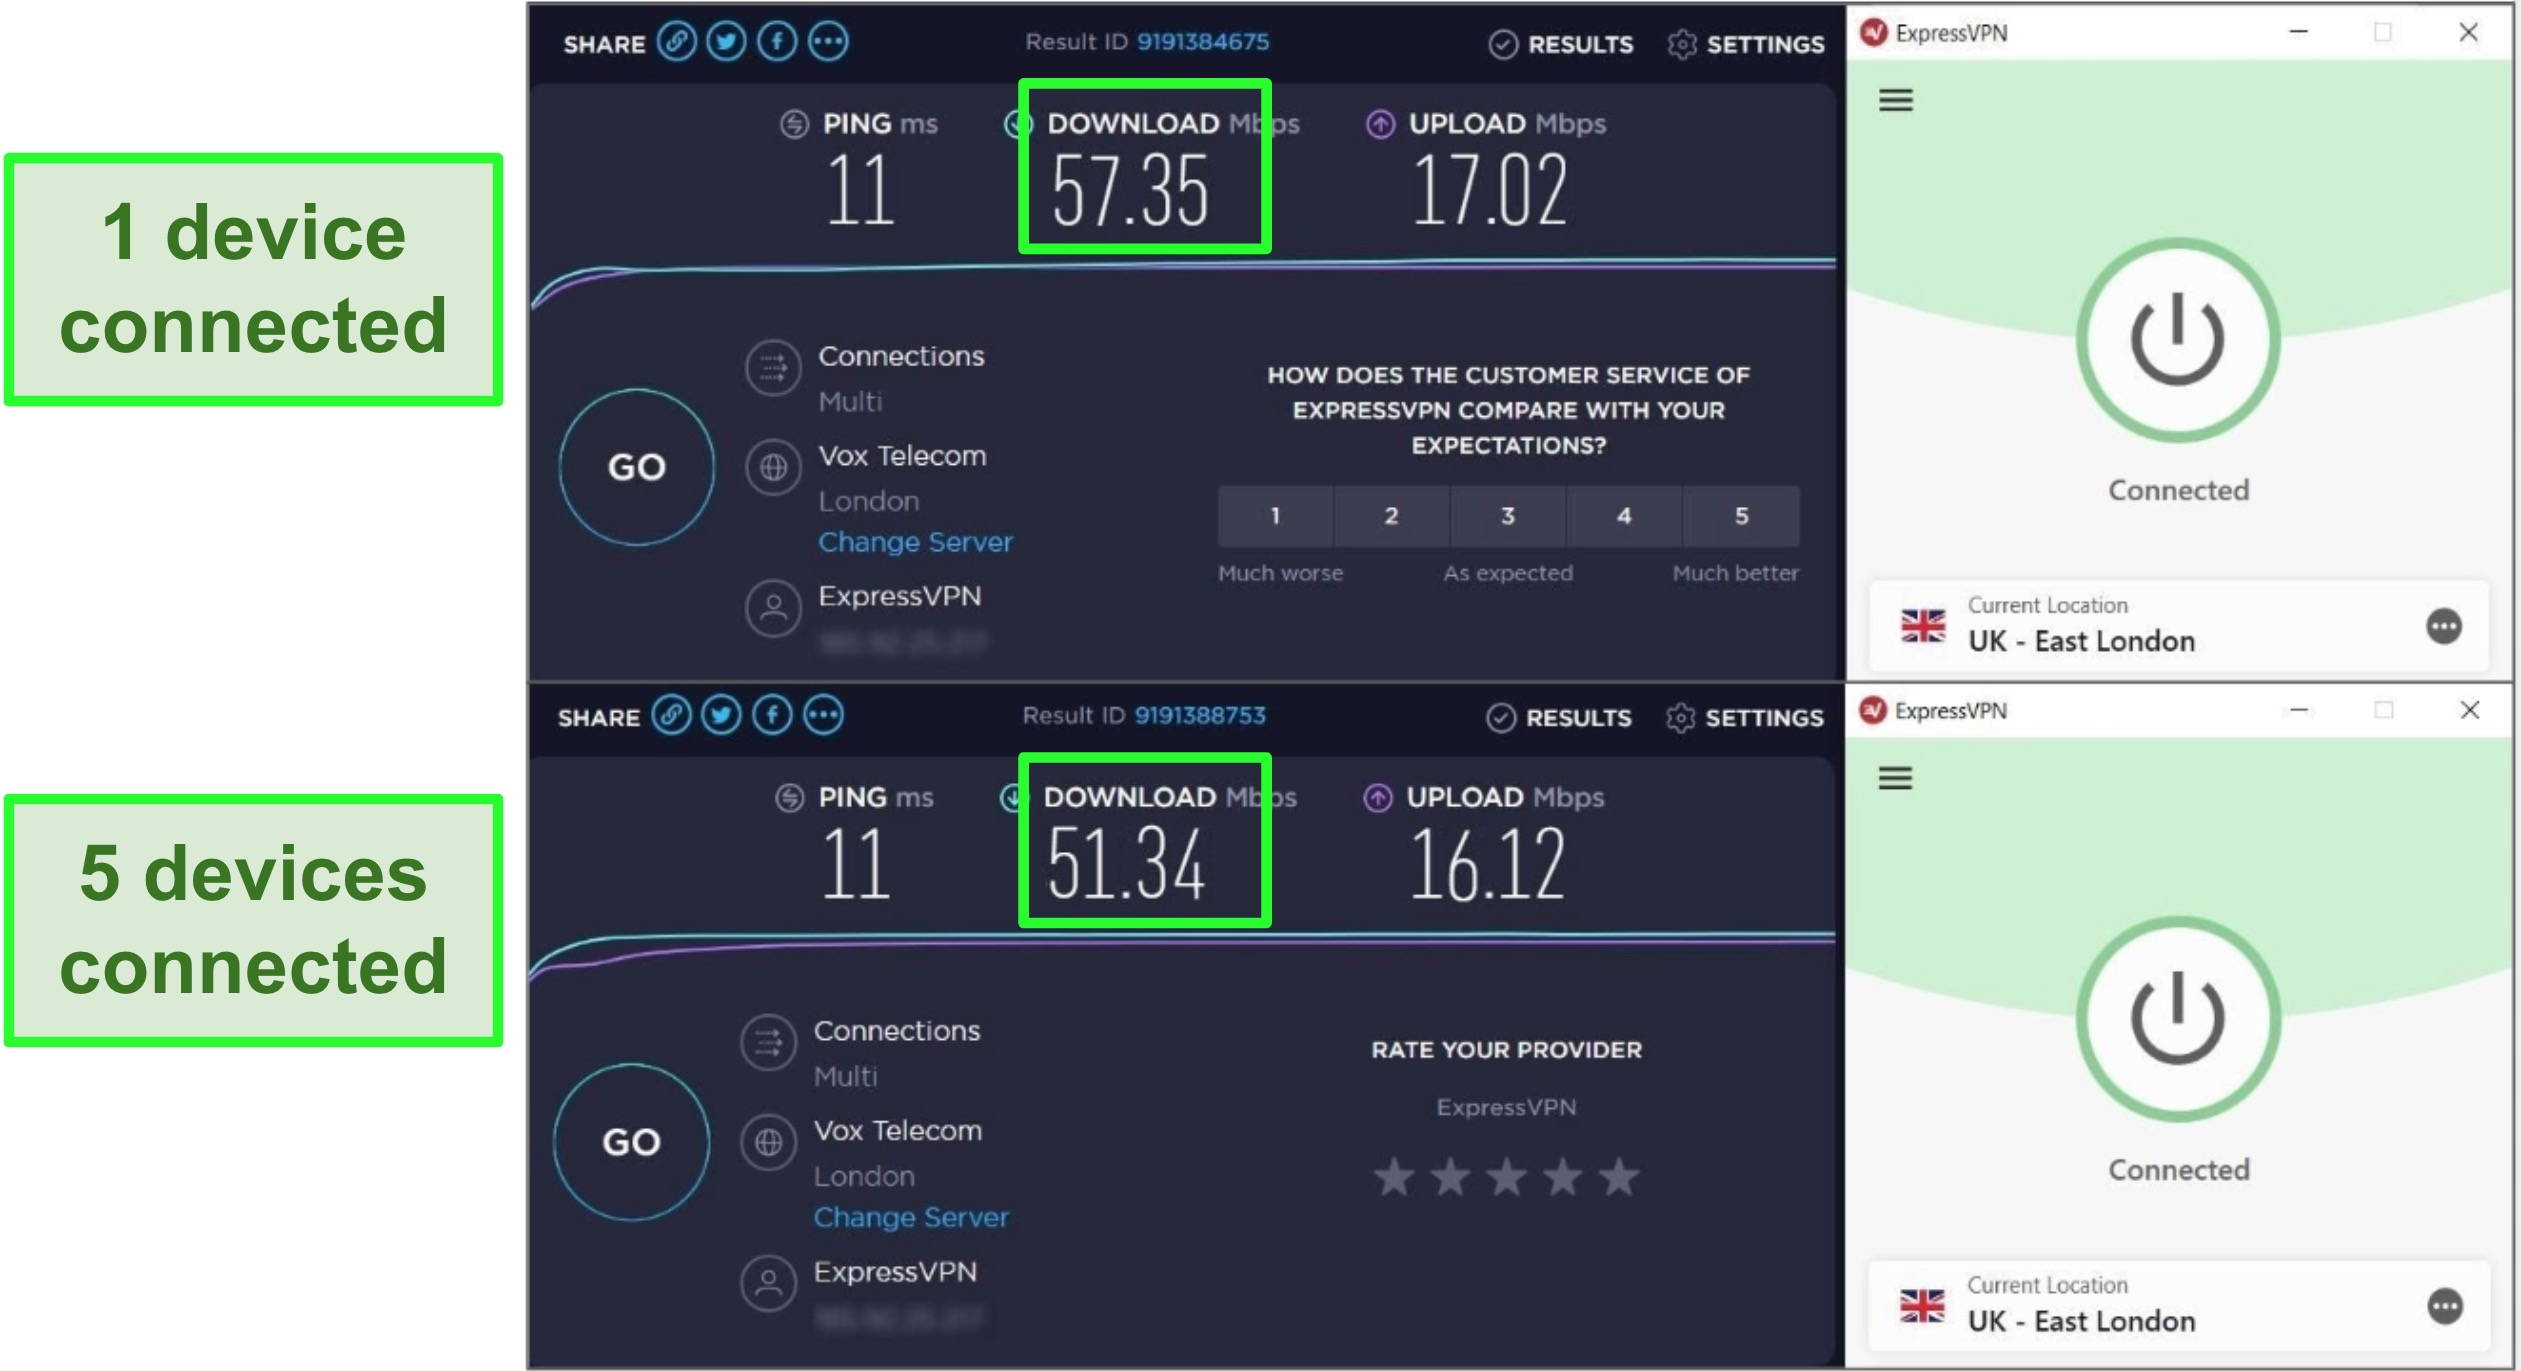 expressvpn speed test on ookla with 1 device and 5 devices